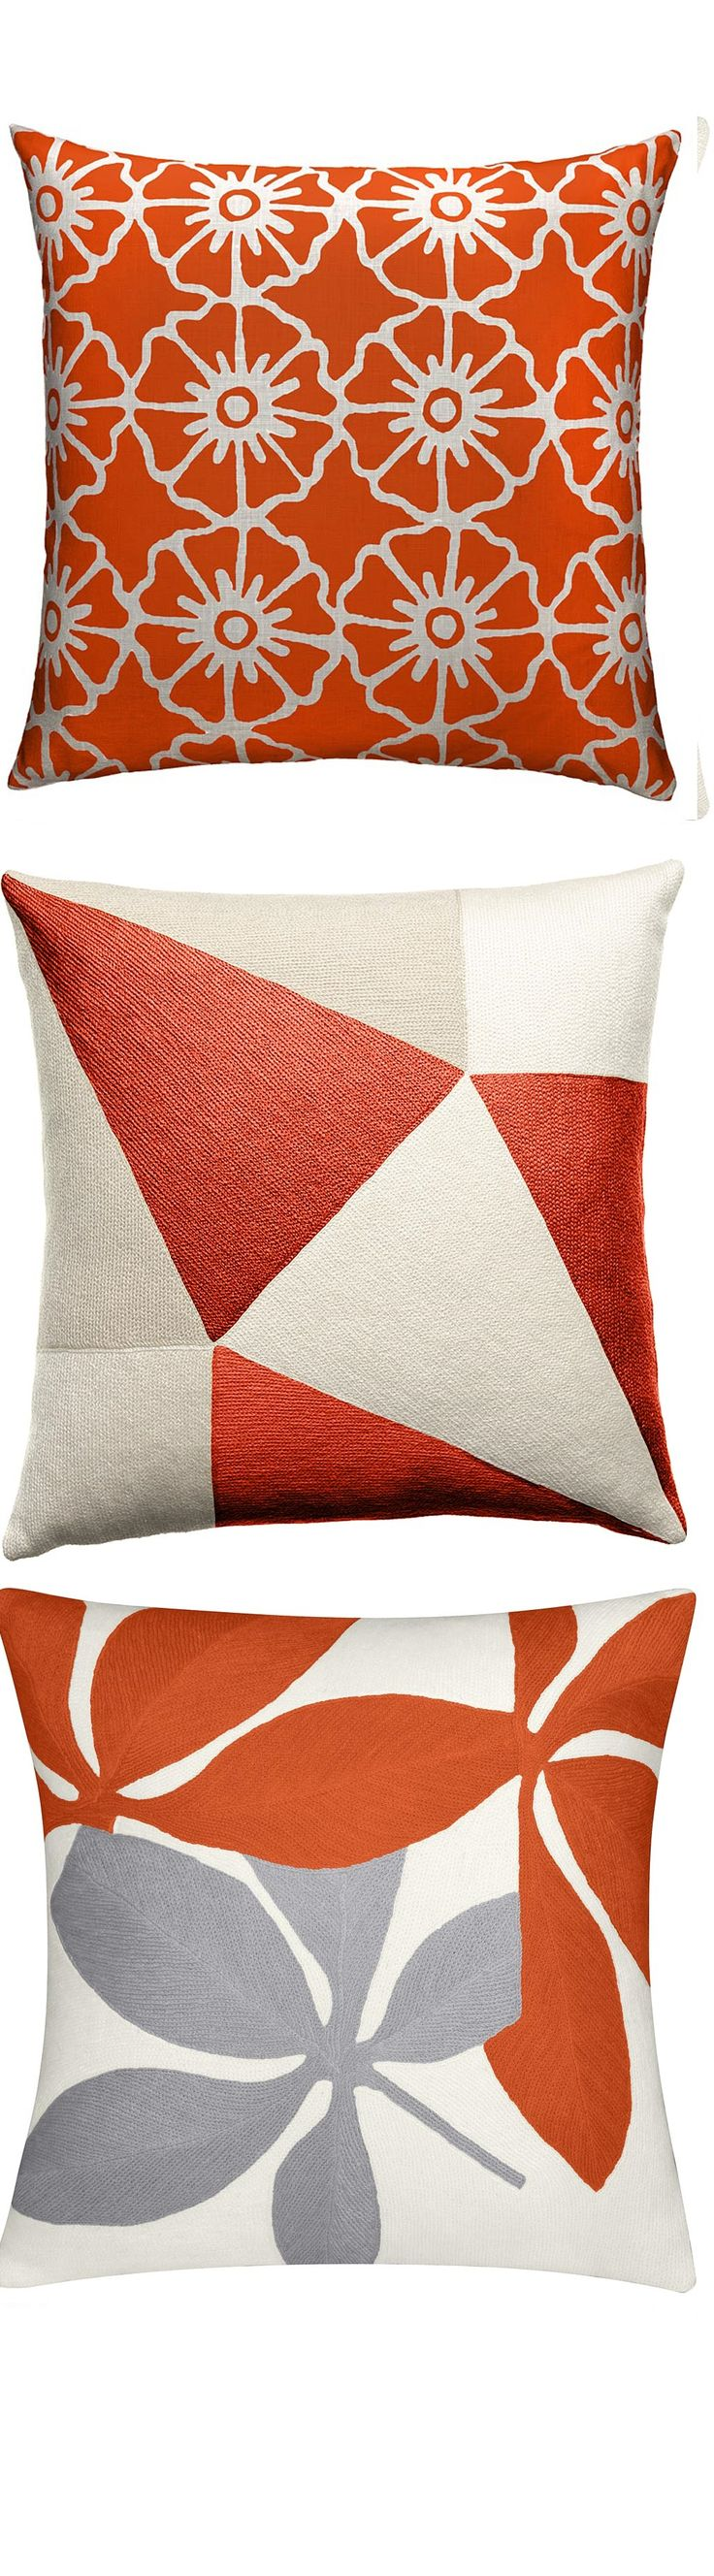 best  orange throw pillows ideas only on pinterest  orange  - orange pillows orange throw pillows orange modern pillows by…